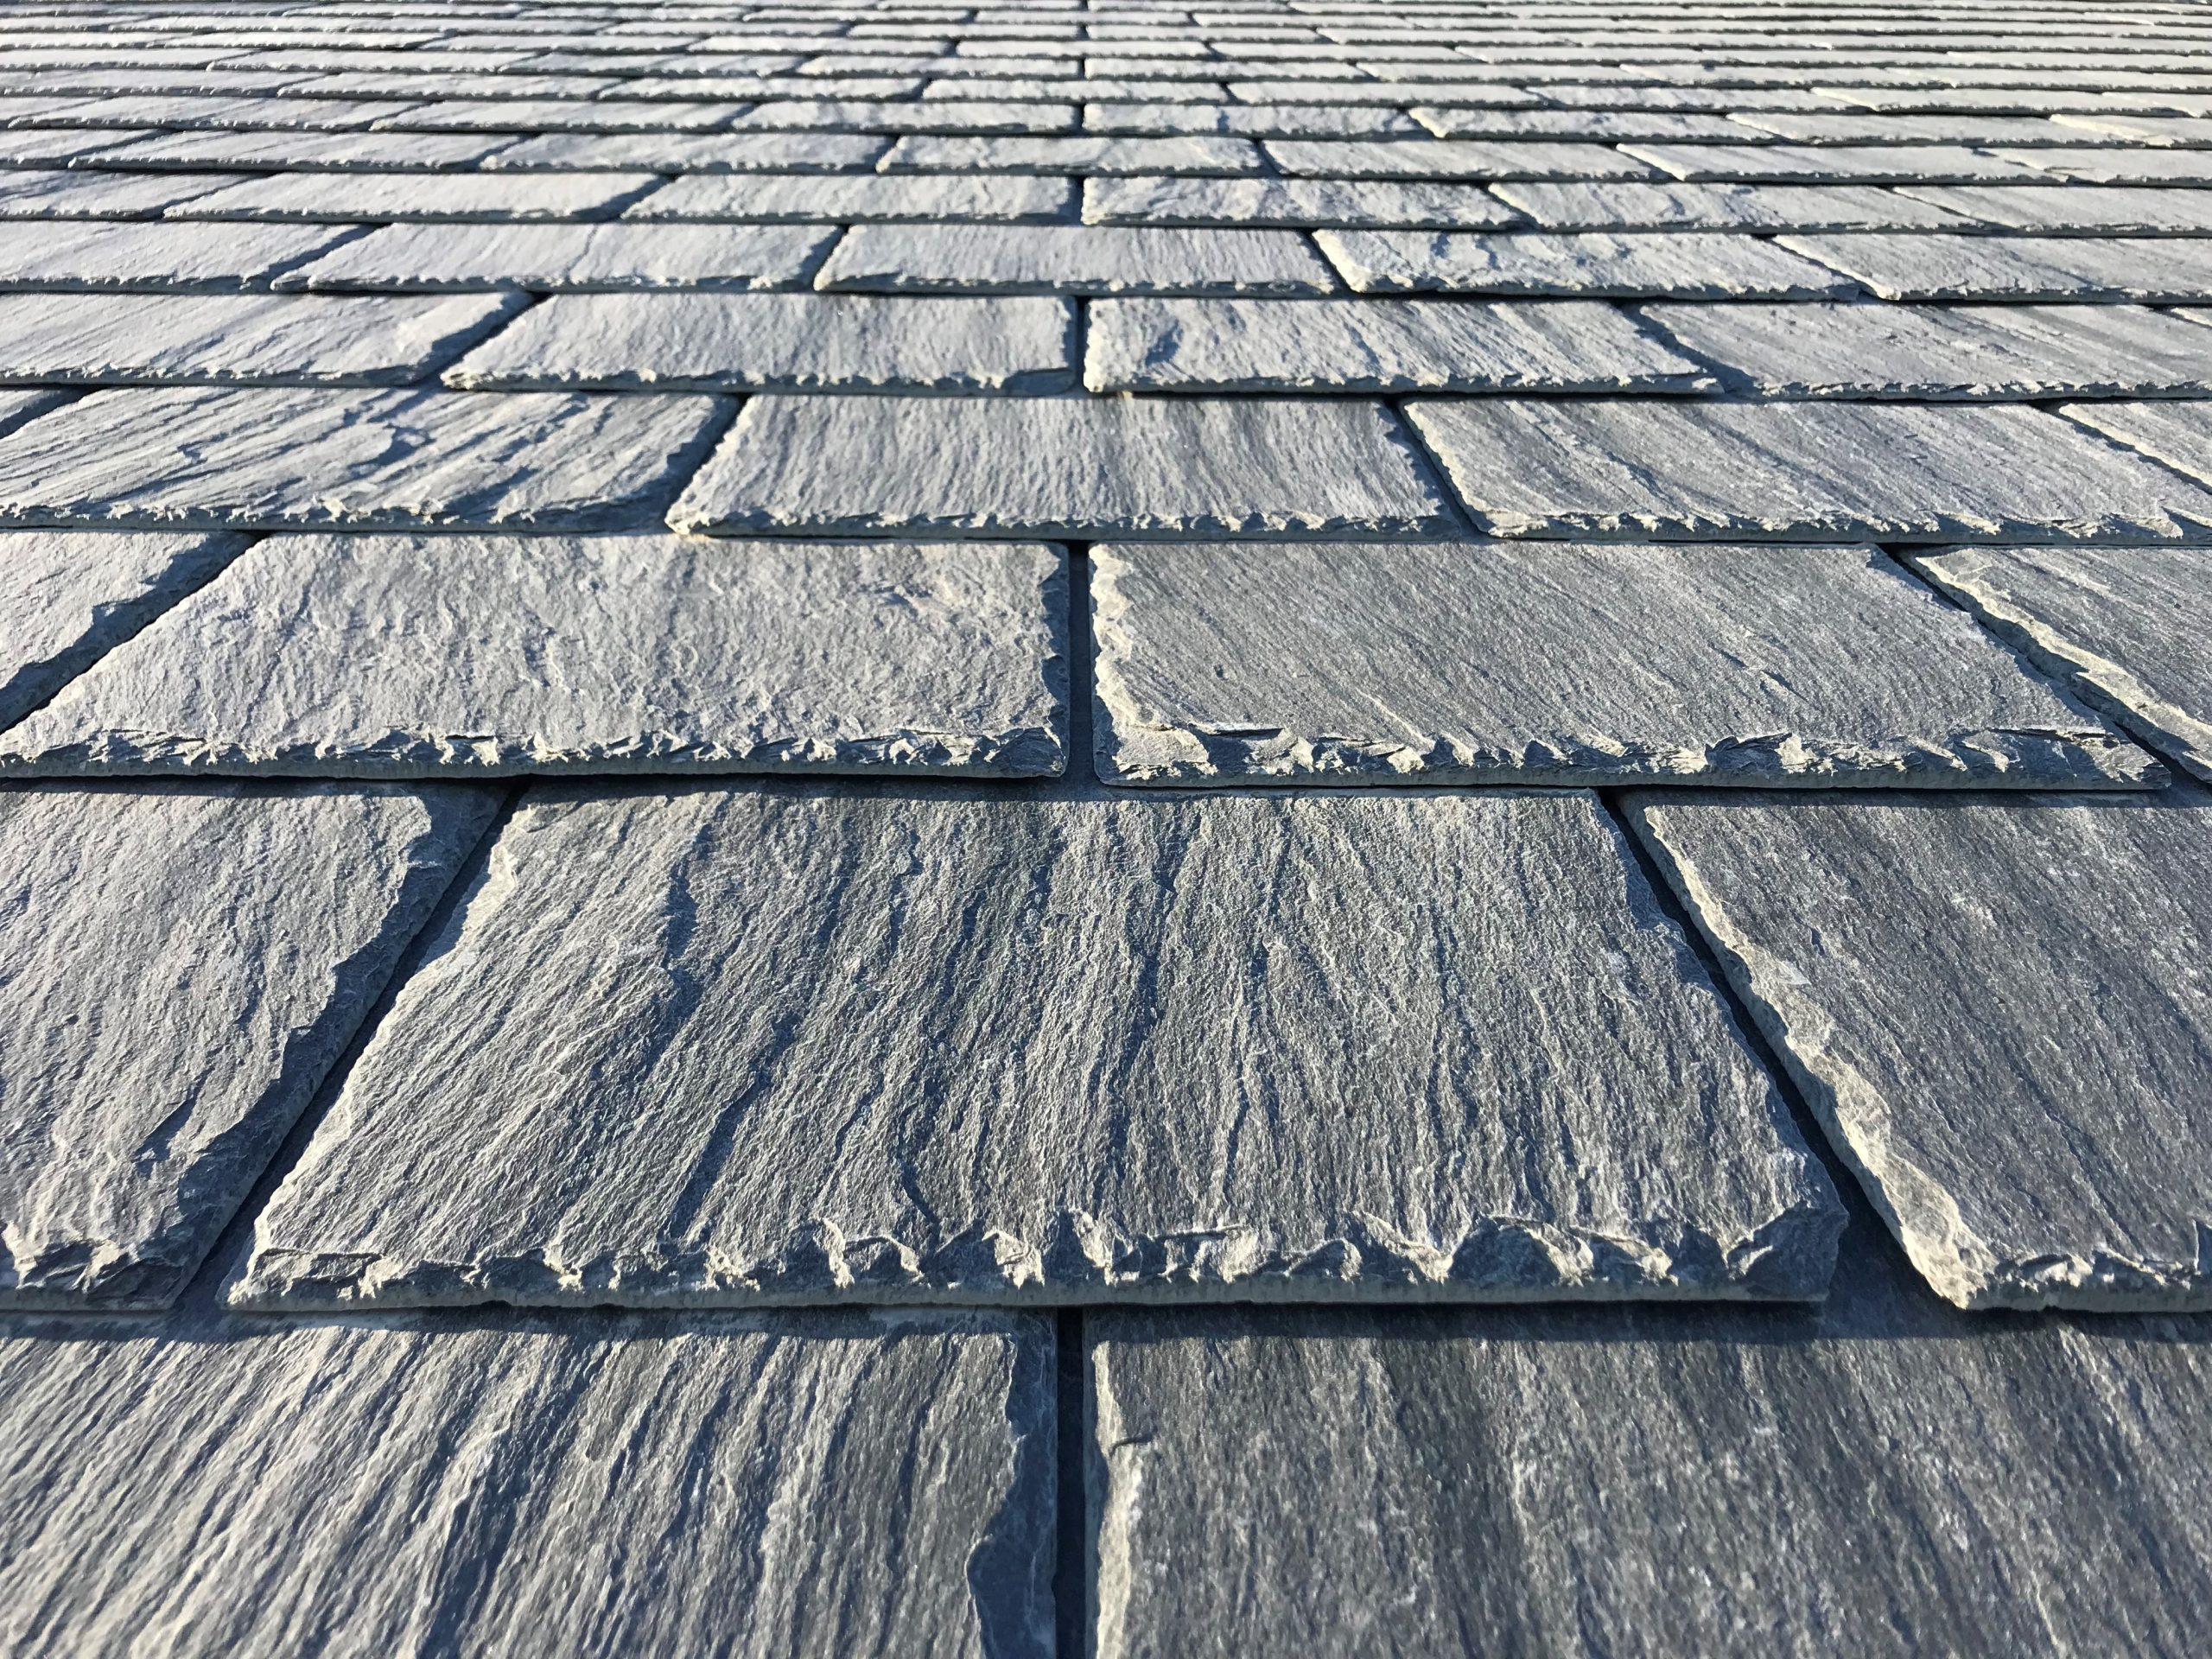 slate roof close-up